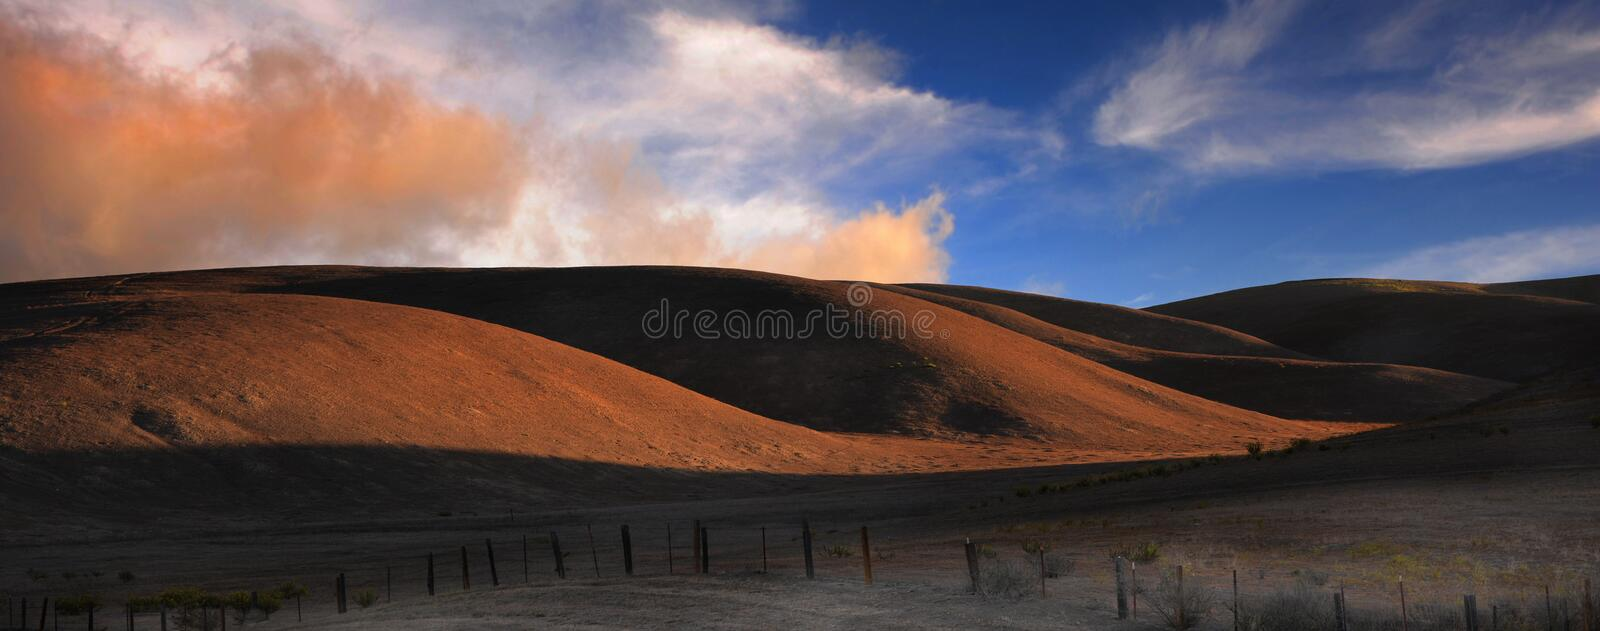 Northern California growing Fields royalty free stock image